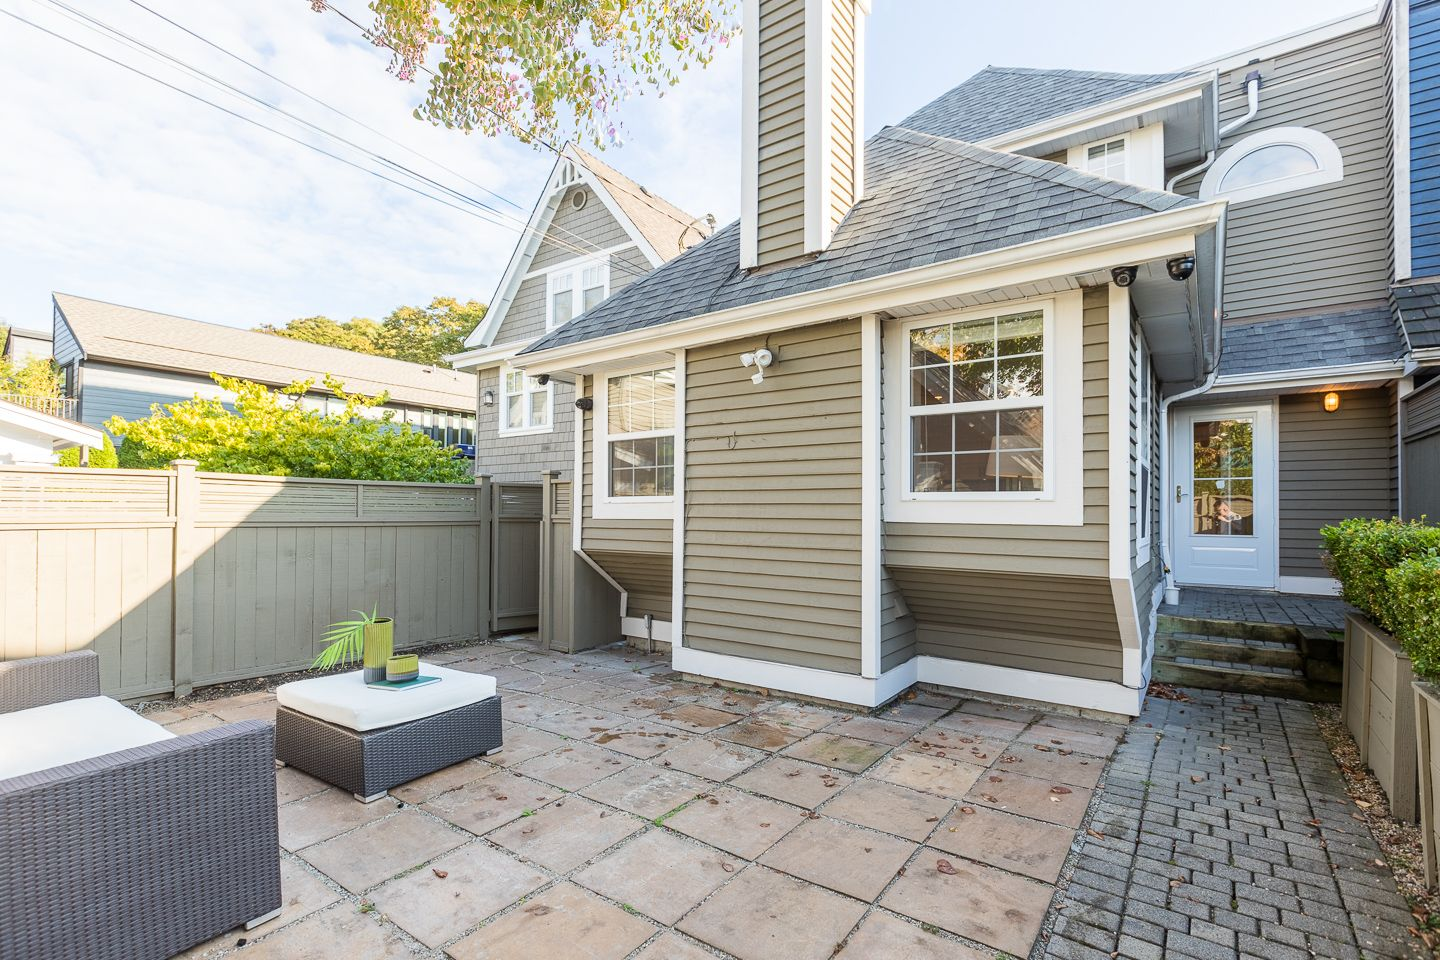 Photo 18: Photos: 2267 WEST 13TH AV in VANCOUVER: Kitsilano 1/2 Duplex for sale (Vancouver West)  : MLS®# R2407976